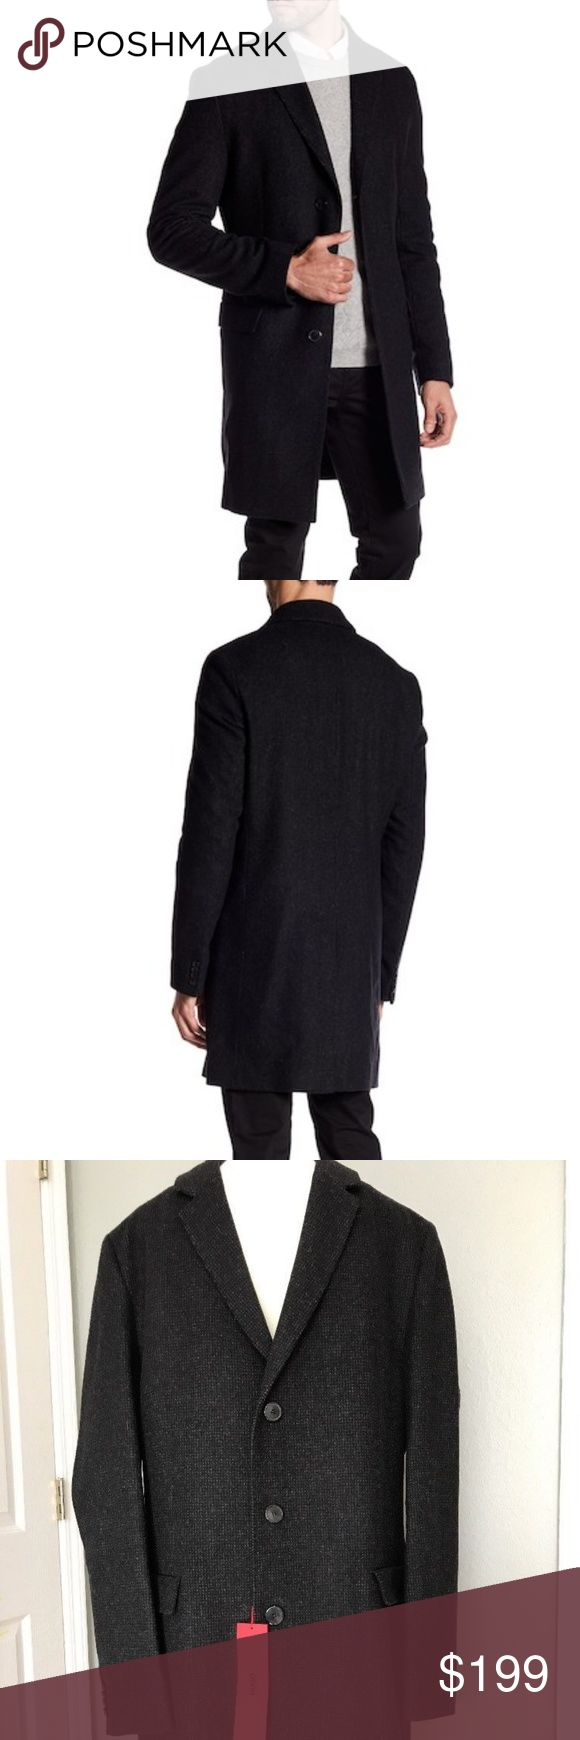 NWT Hugo Boss Migor2 Virgin Wool Coat Made in Romania. High Quality wool coat by Hugo Boss,  80% virgin wool, new with tag.  Color is Charcoal. MSRP $595 Hugo Boss Jackets & Coats